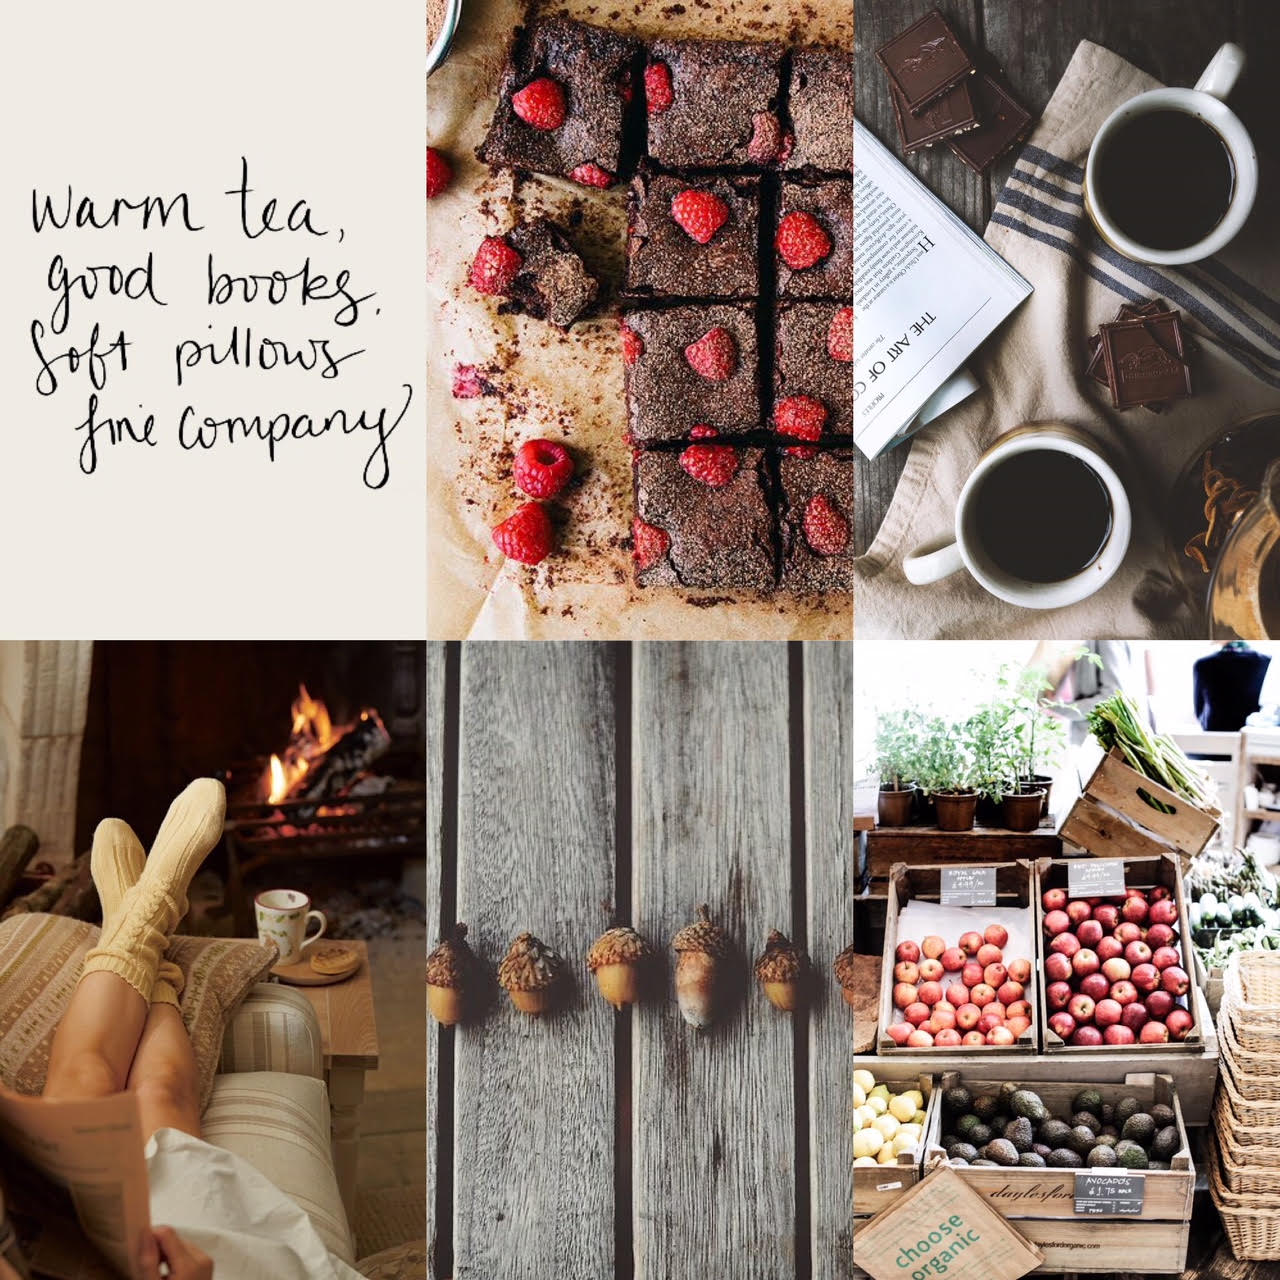 SOURCES:  QUOTE ,  BROWNIES ,  COFFEE MUGS ,  COZY COUCH ,  ACORNS ,  FARMERS MARKE T